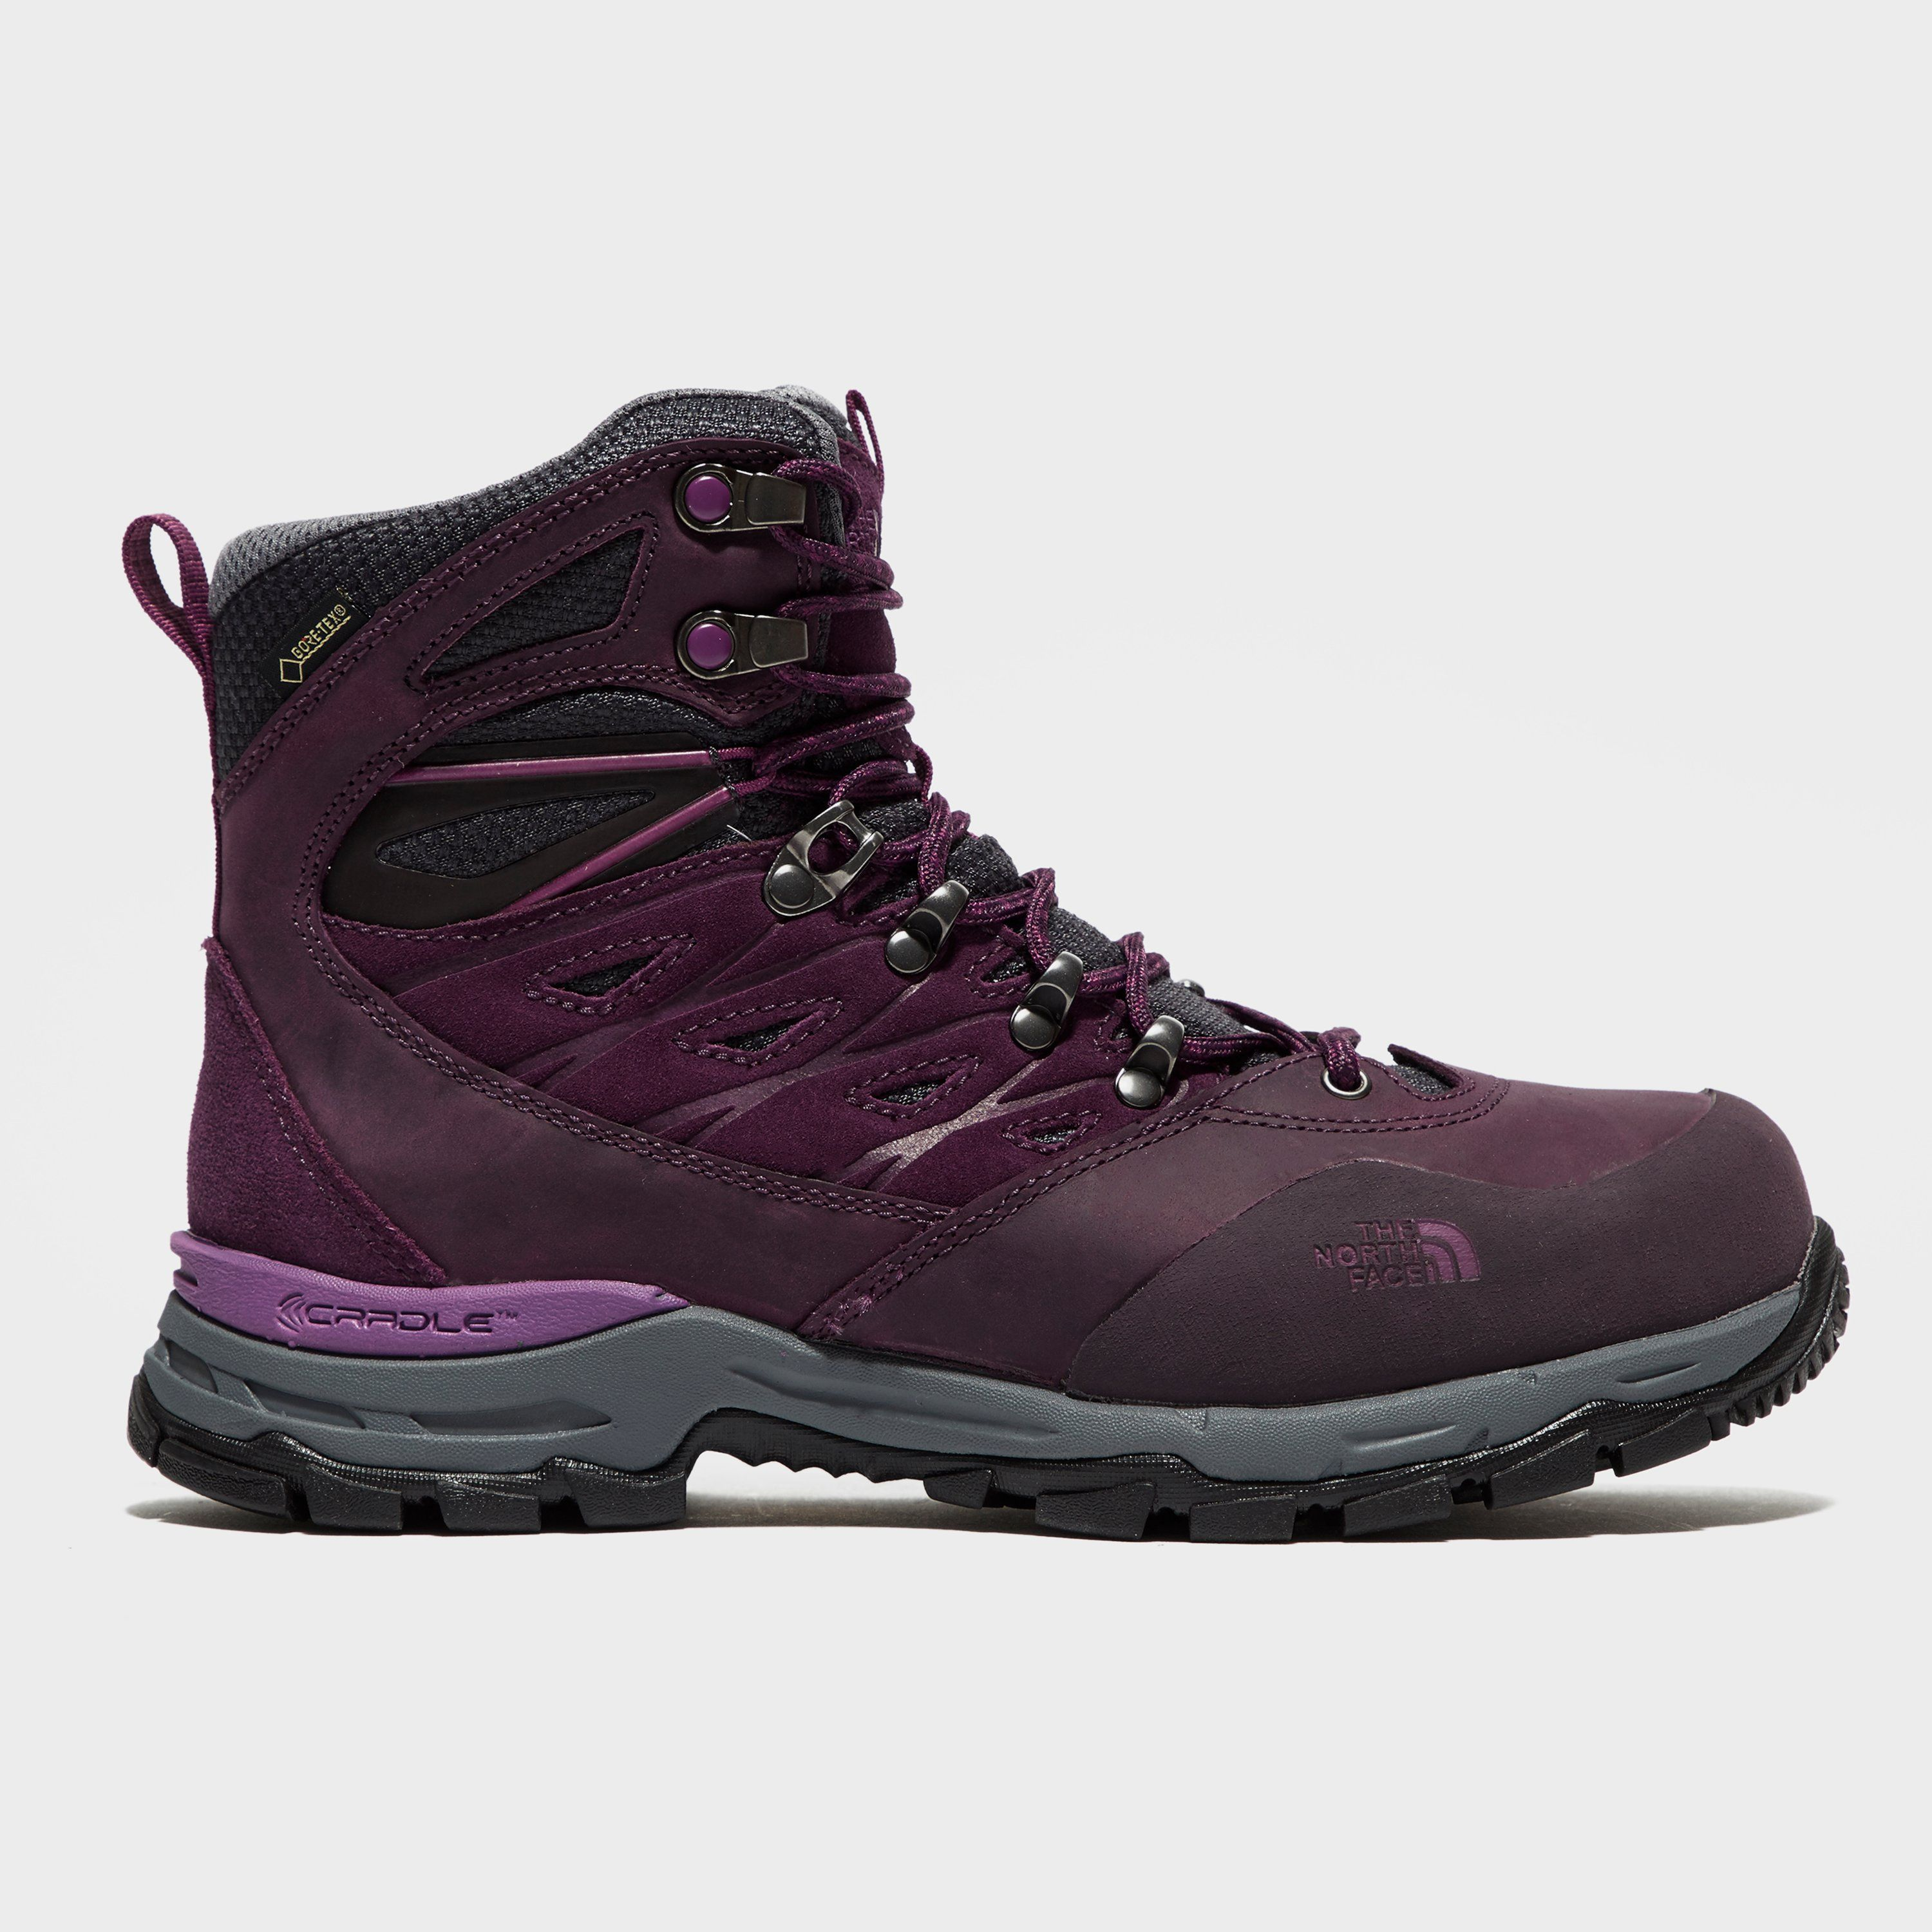 THE NORTH FACE Women's Hedgehog Trek GORE-TEX® Boots